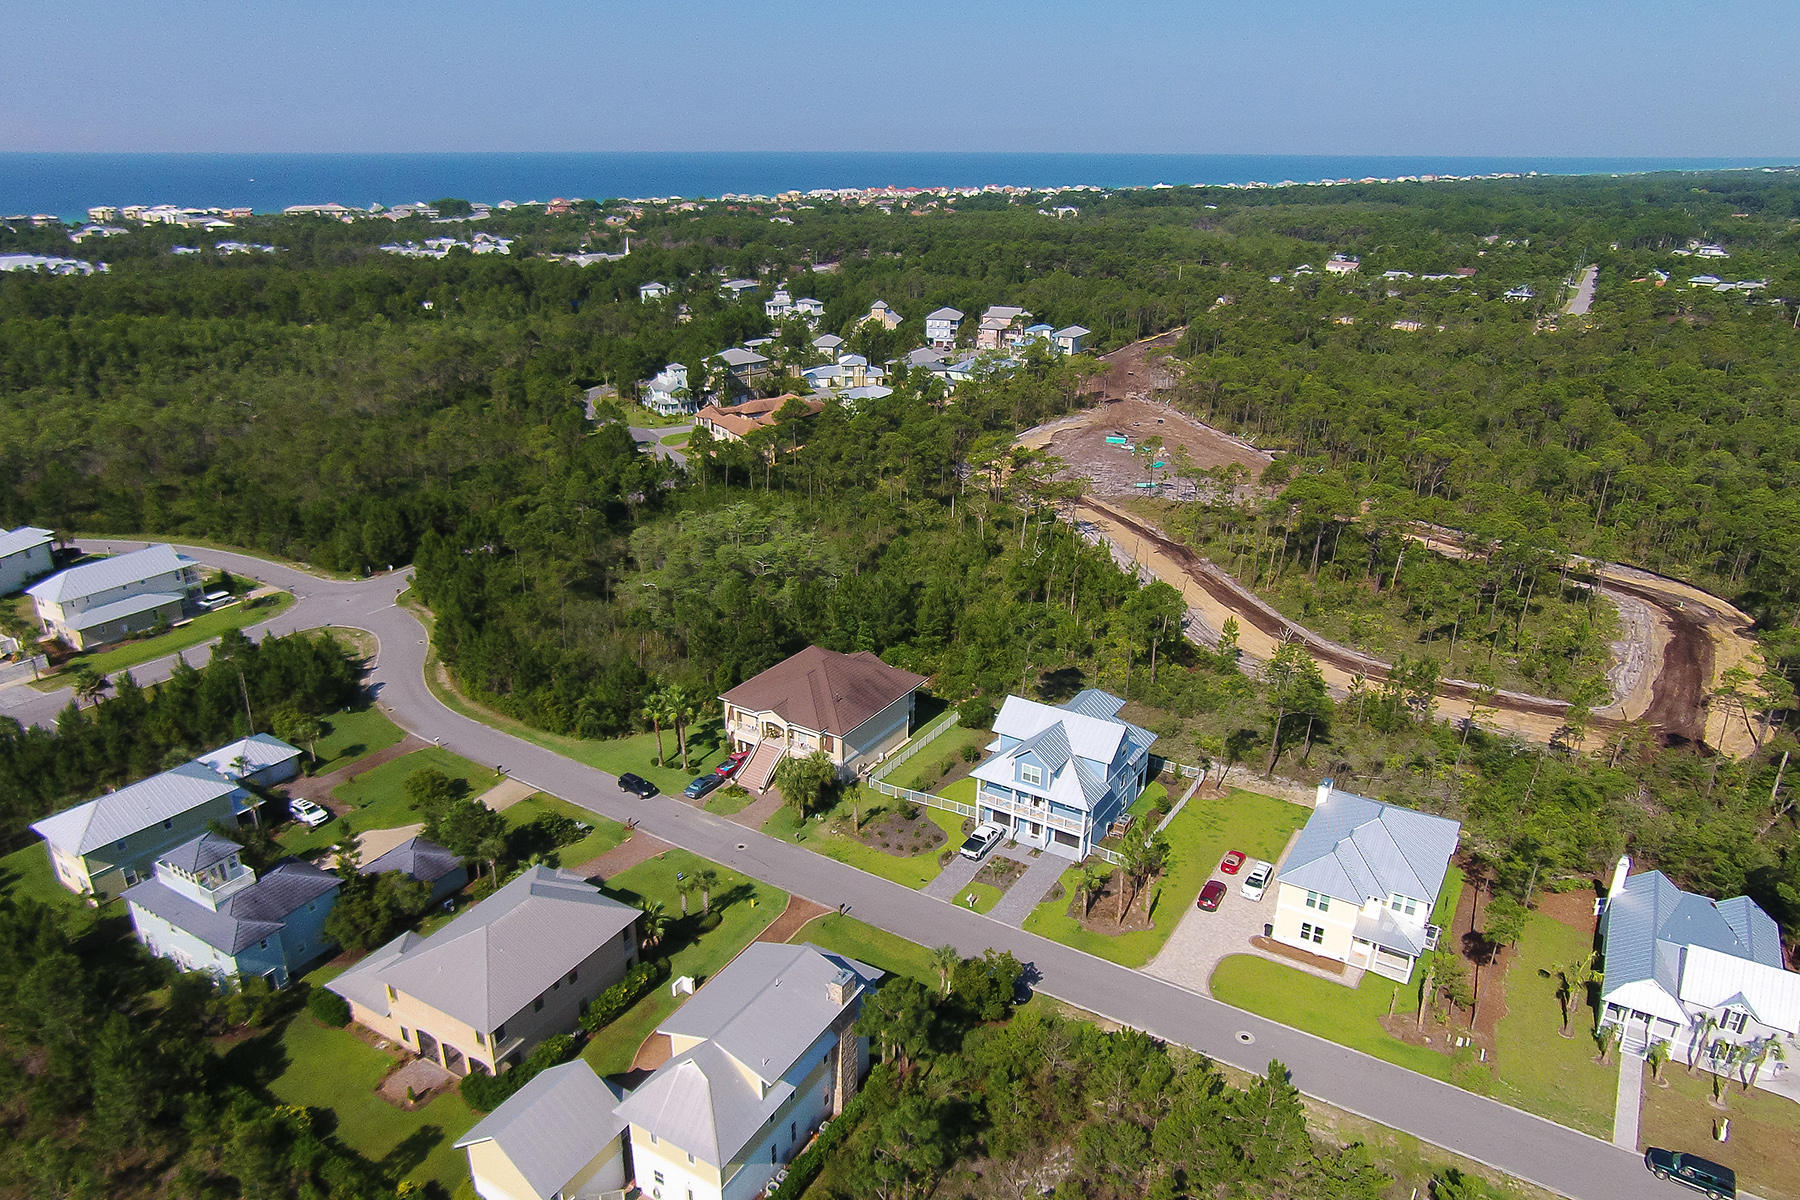 Land for Sale at LOT BACKING TRANQUIL CONSERVATION AREA Lot 47 Breezeway Blvd Santa Rosa Beach, Florida 32459 United States